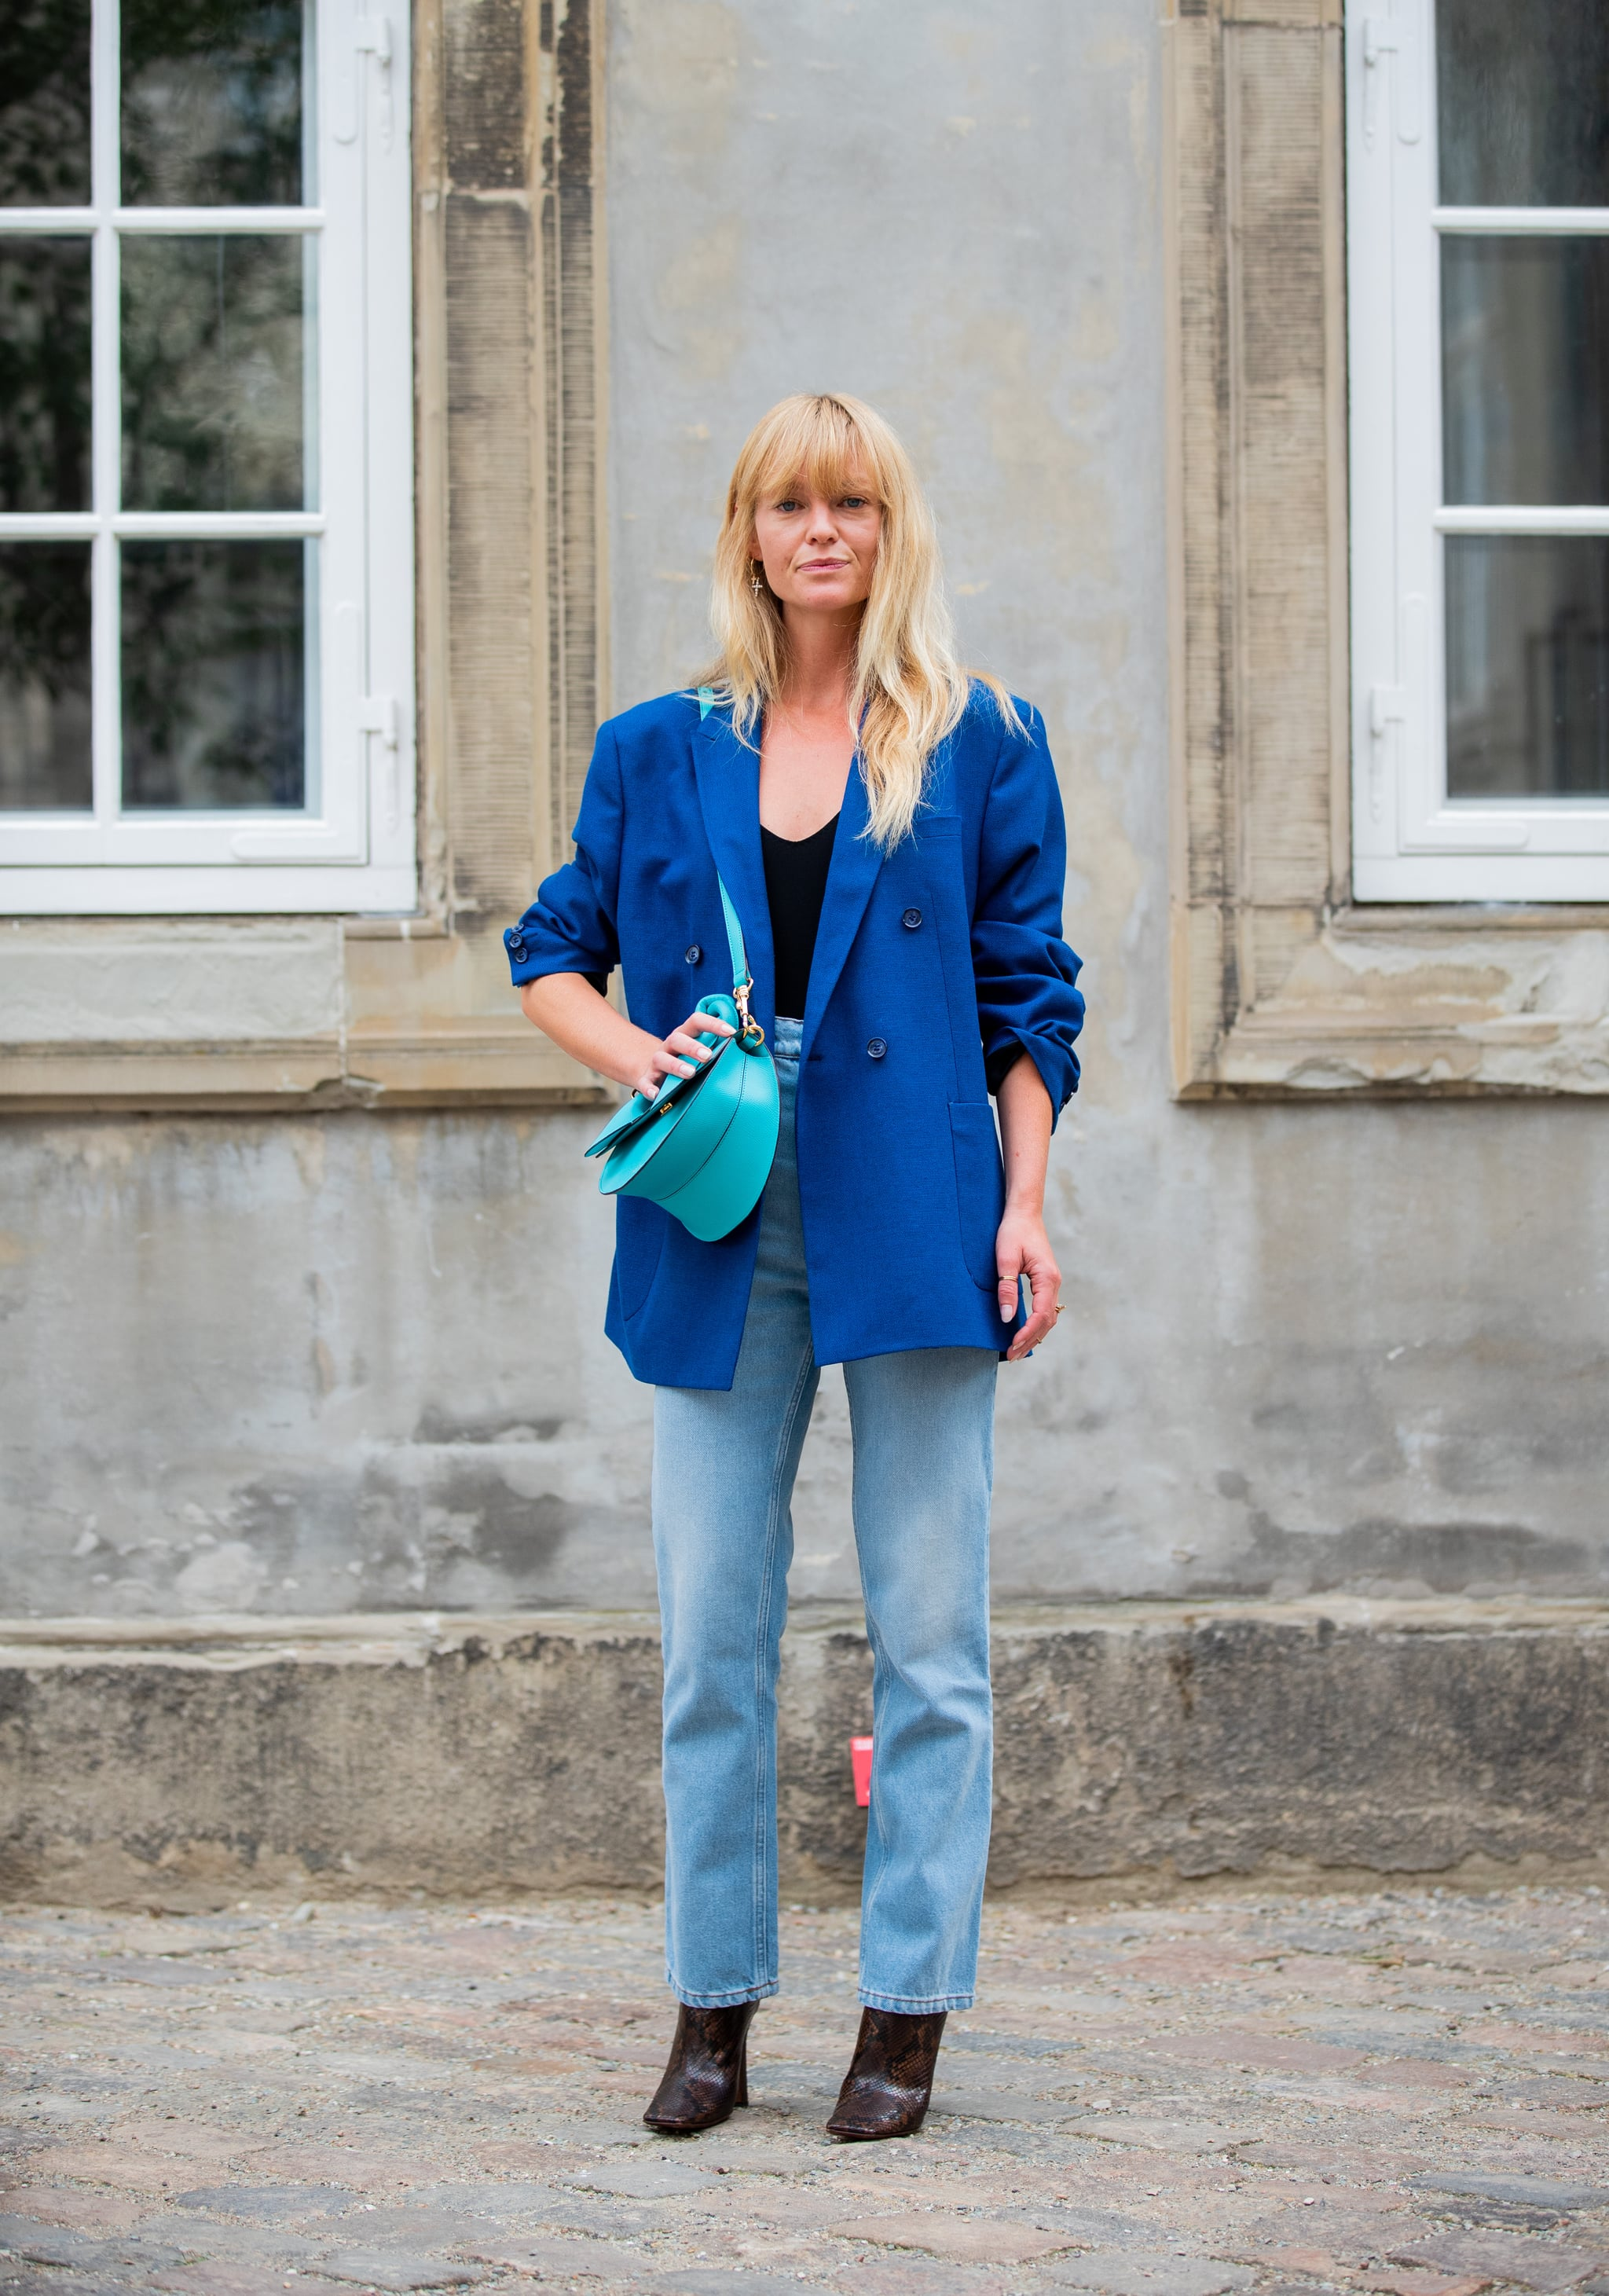 Fall Outfit Idea Blue Blazer Jeans Snake Print Boots 24 Outfits That Will Change The Way You Dress For Fall Popsugar Fashion Photo 10